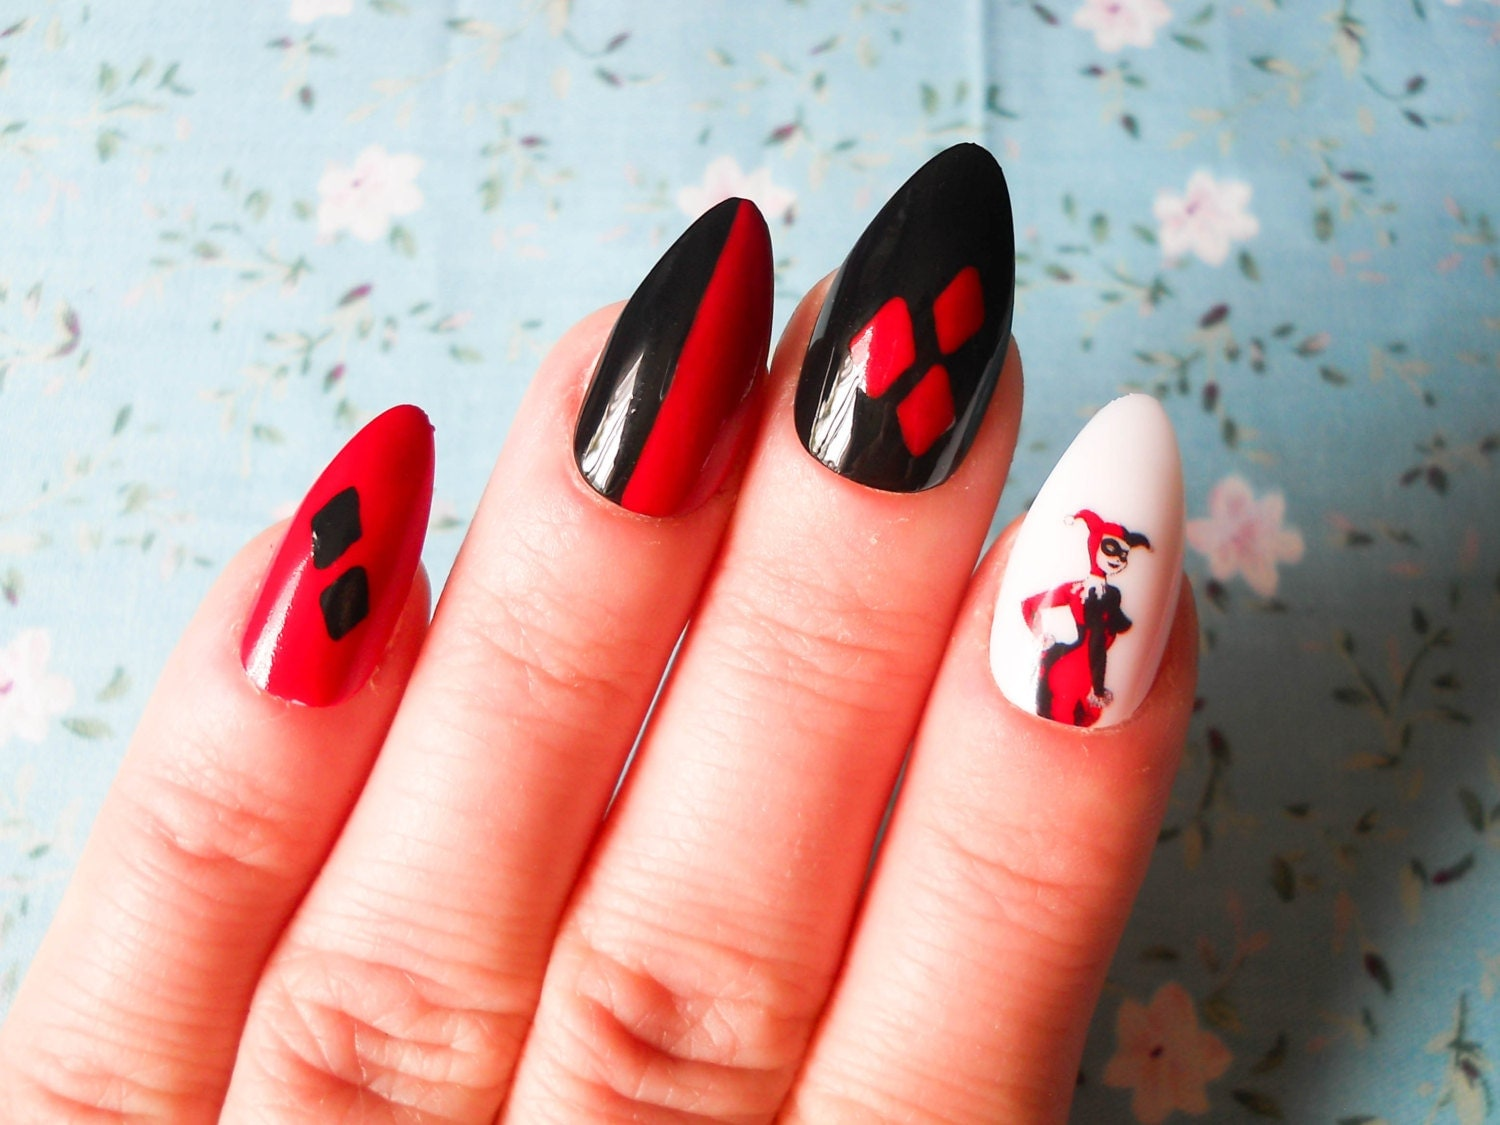 Nails design bealeton va hours ~ Beautify themselves with sweet nails